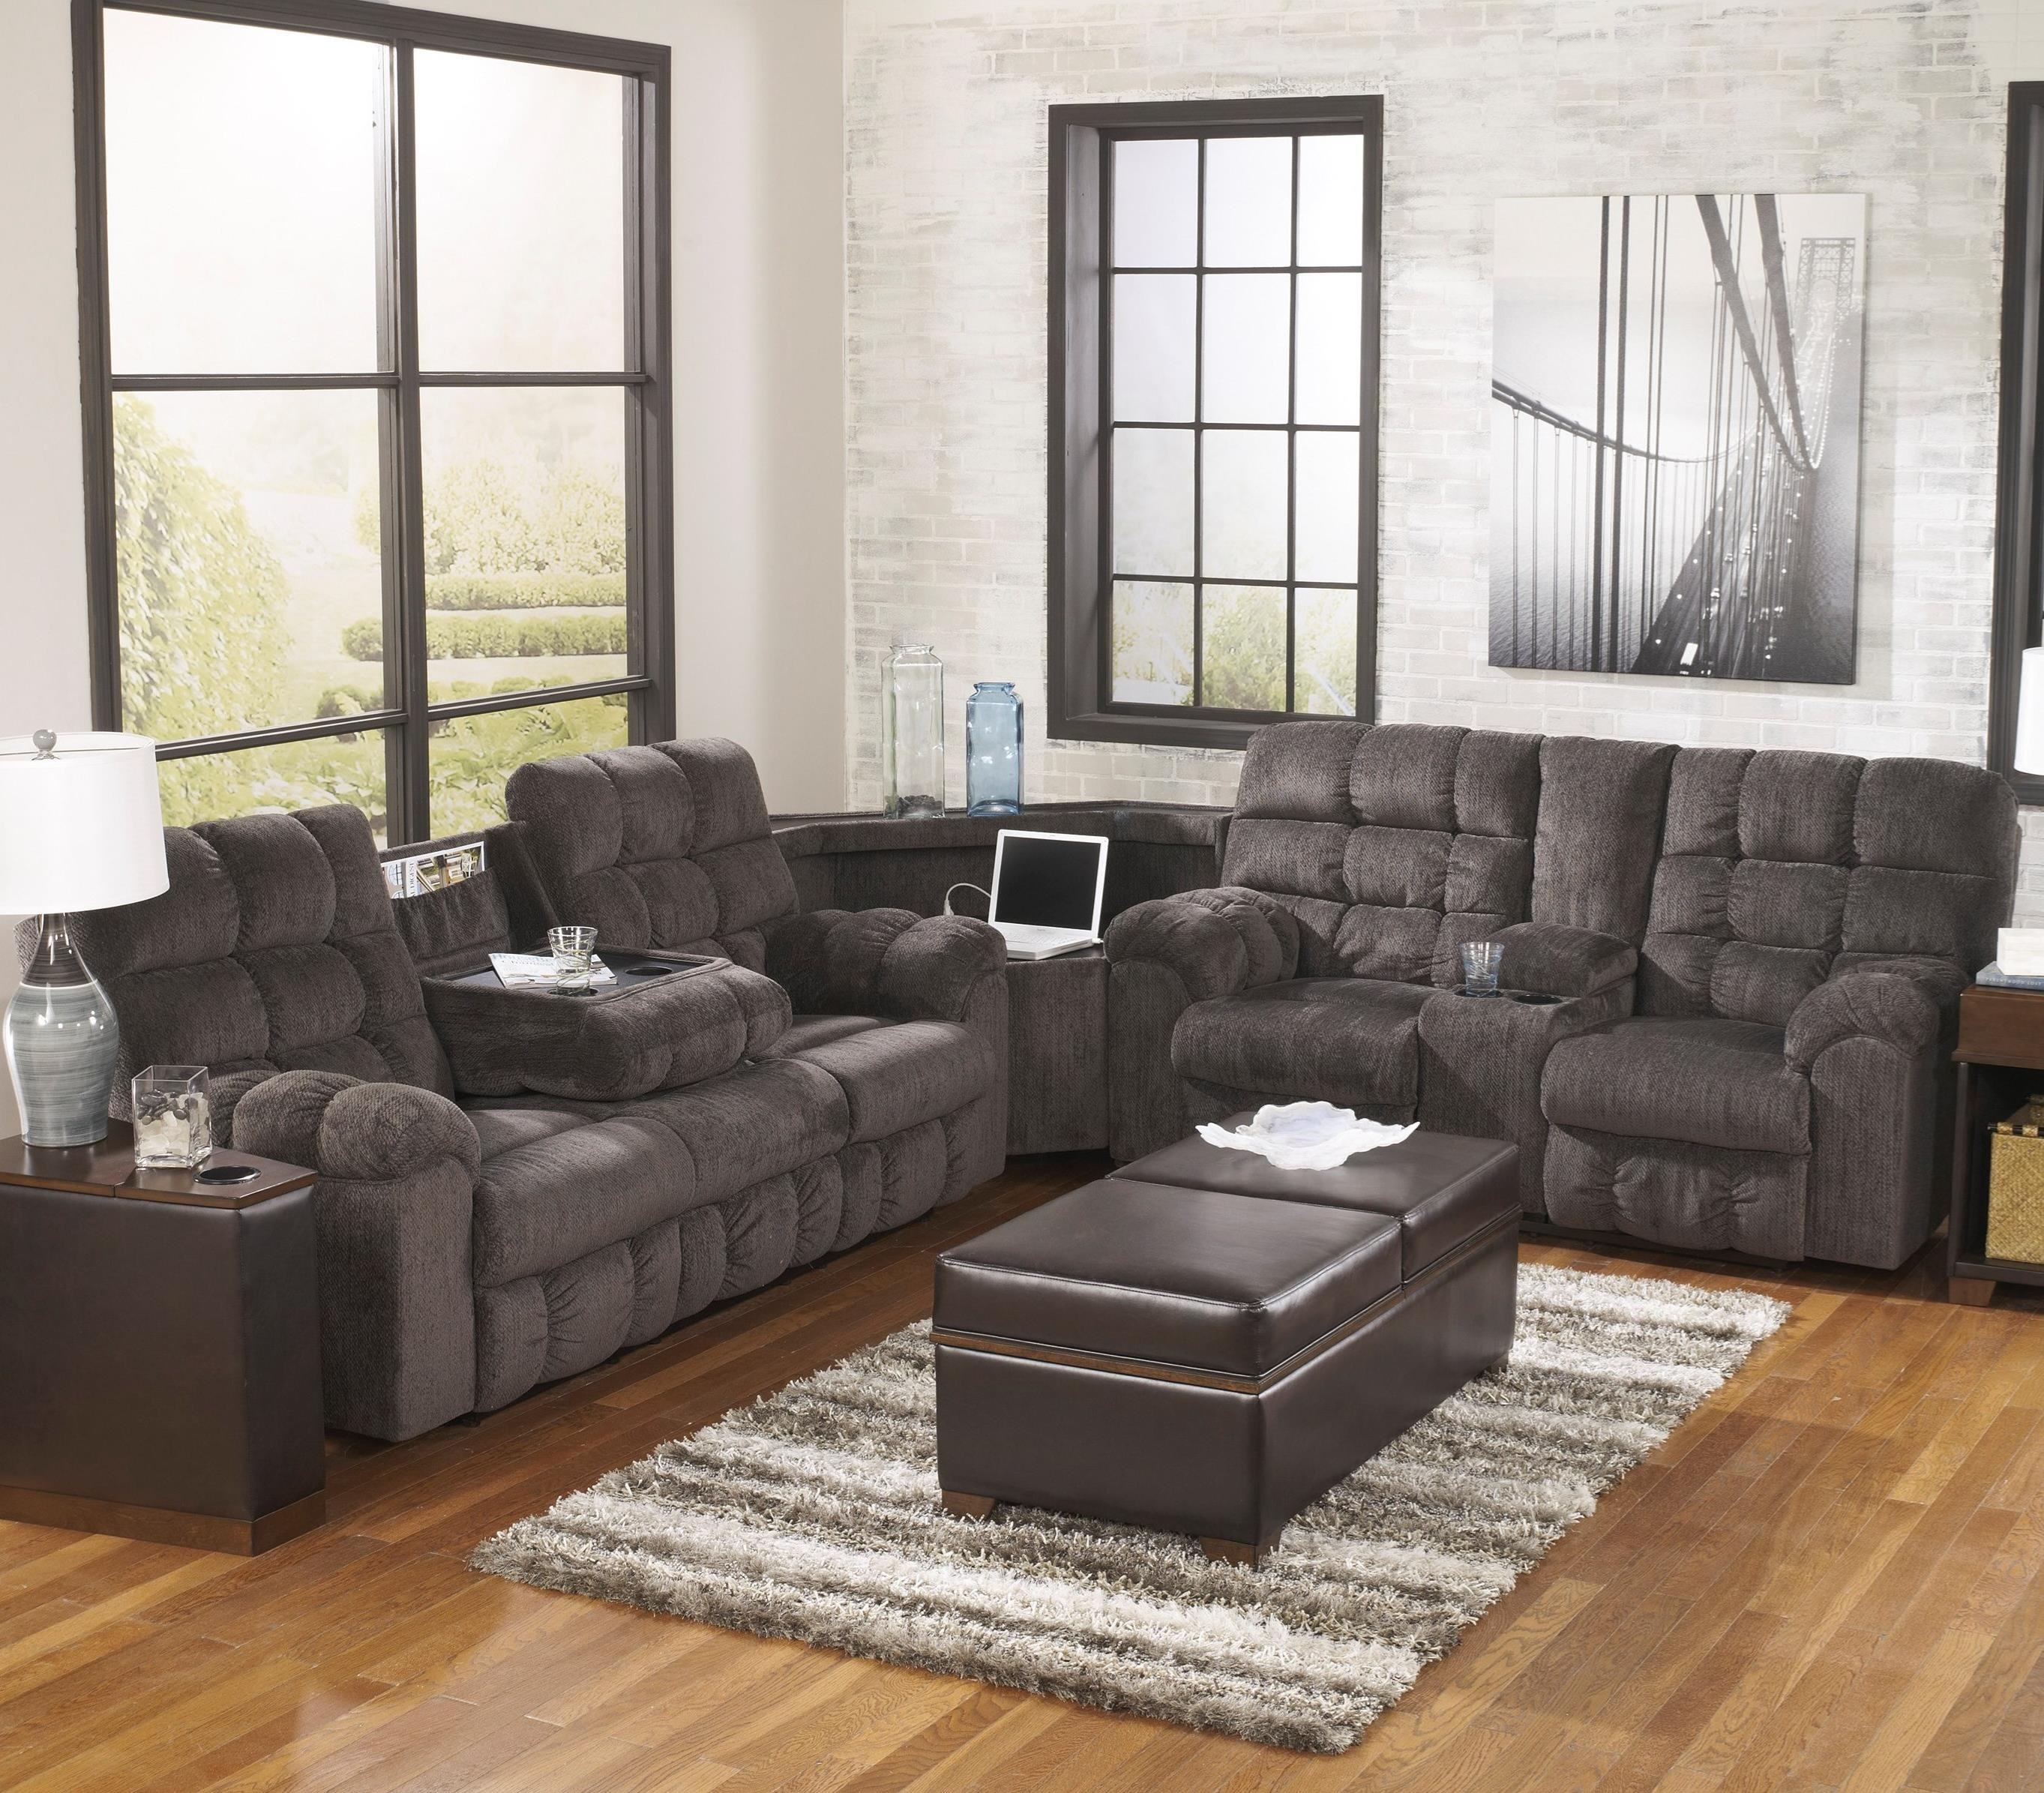 Reclining Sectional with Right Side Loveseat : reclining sectional with cup holders - Sectionals, Sofas & Couches